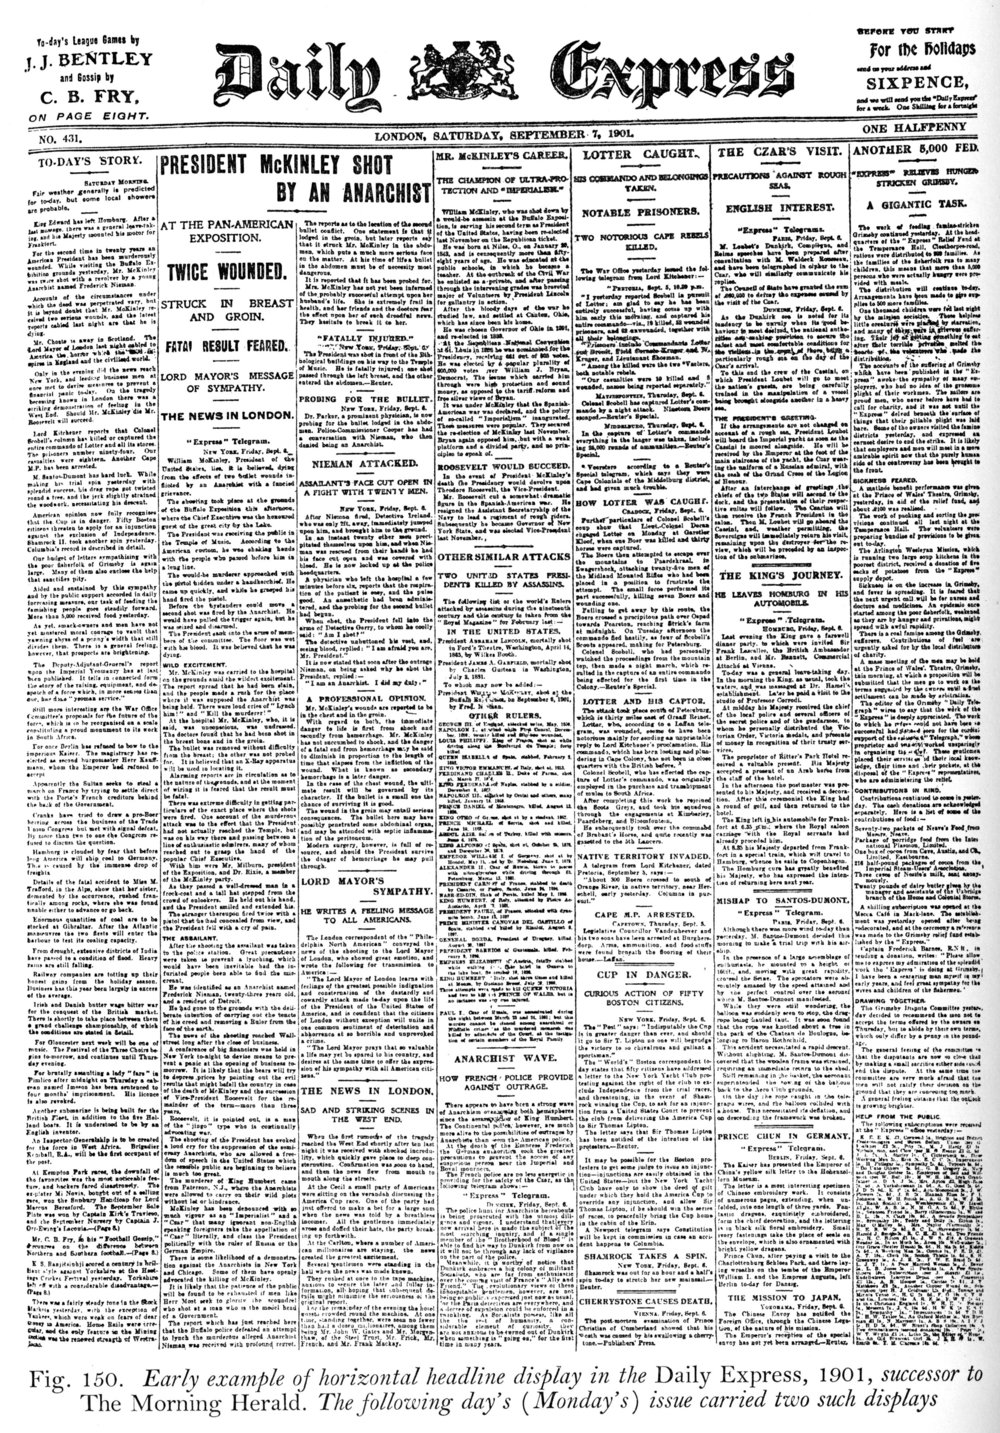 London Daily Express, September, 1901, the object of Morison's ire.